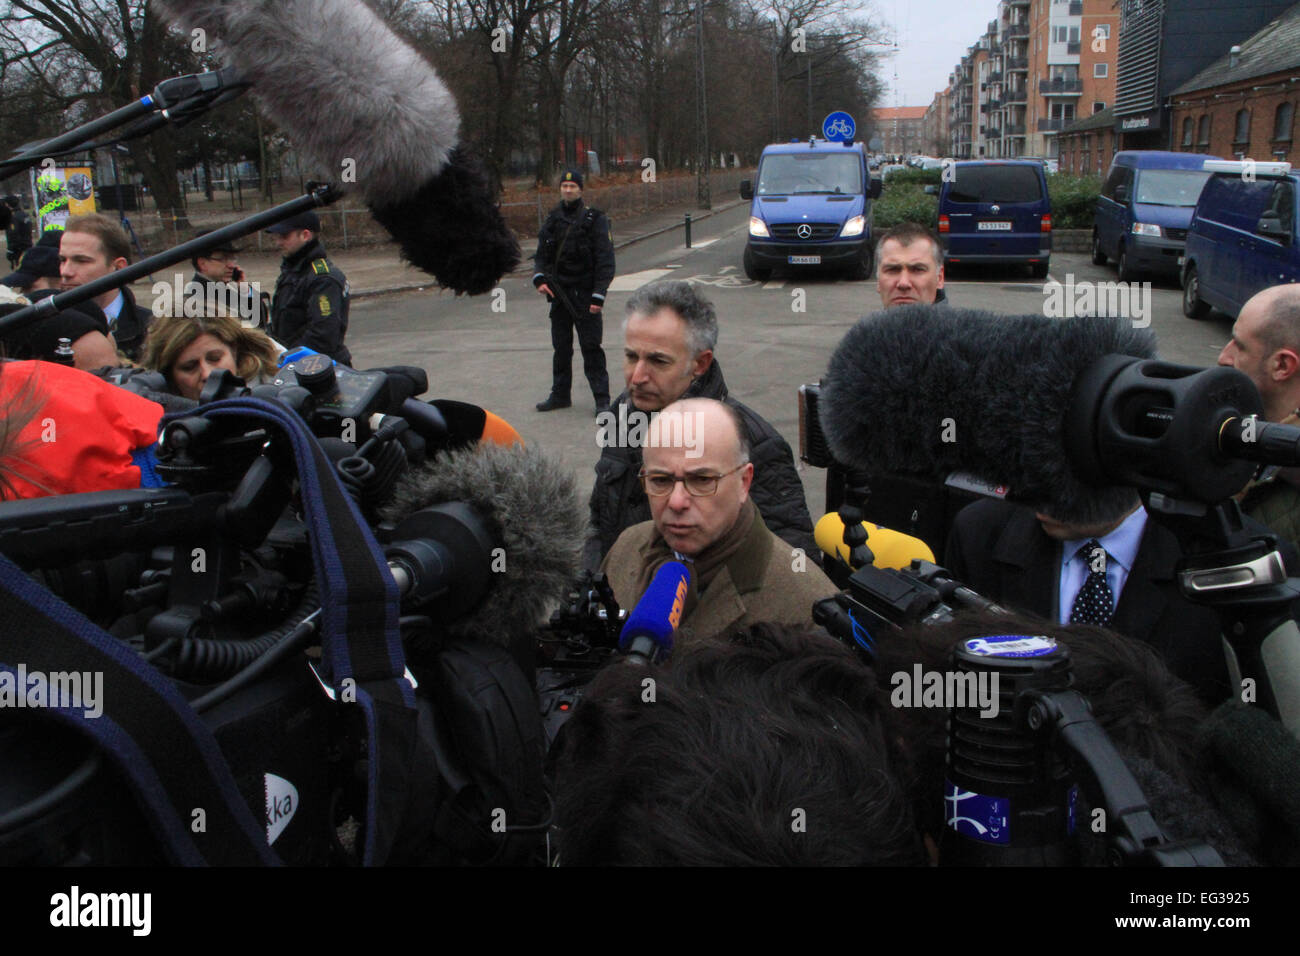 Denmark, Copenhagen. 15th Feb, 2015. French Interior Minister Bernard Cazeneuve (C) speaks during an interview in - Stock Image